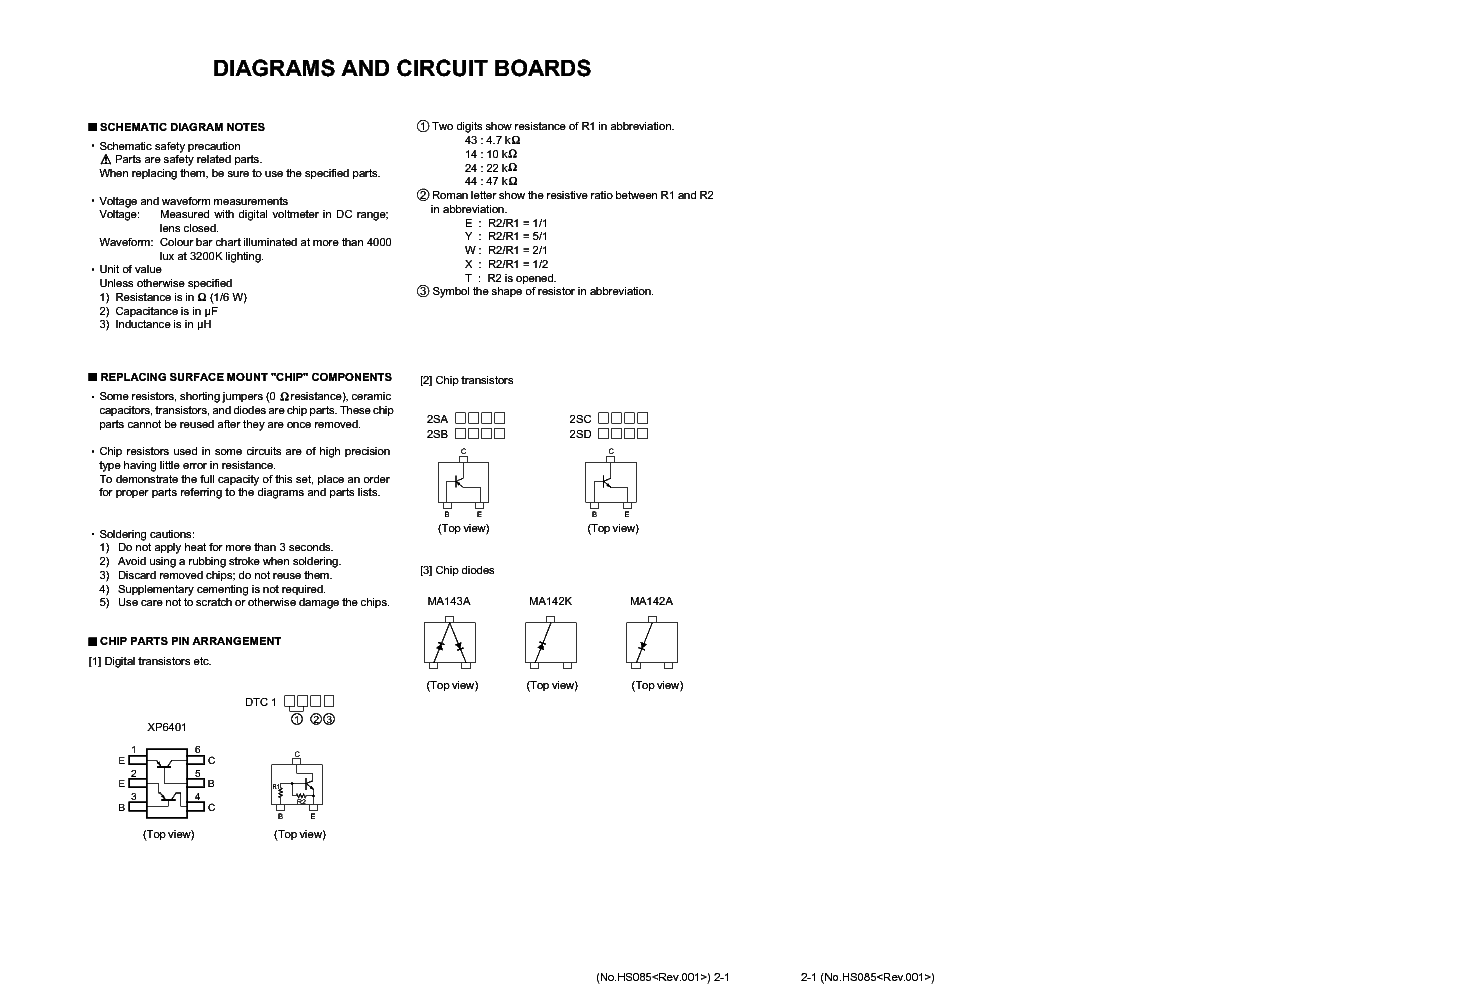 Jvc Vr N1600e N1600u Service Manual Download Schematics Eeprom Kd G220 Wiring Diagram Tkc9200